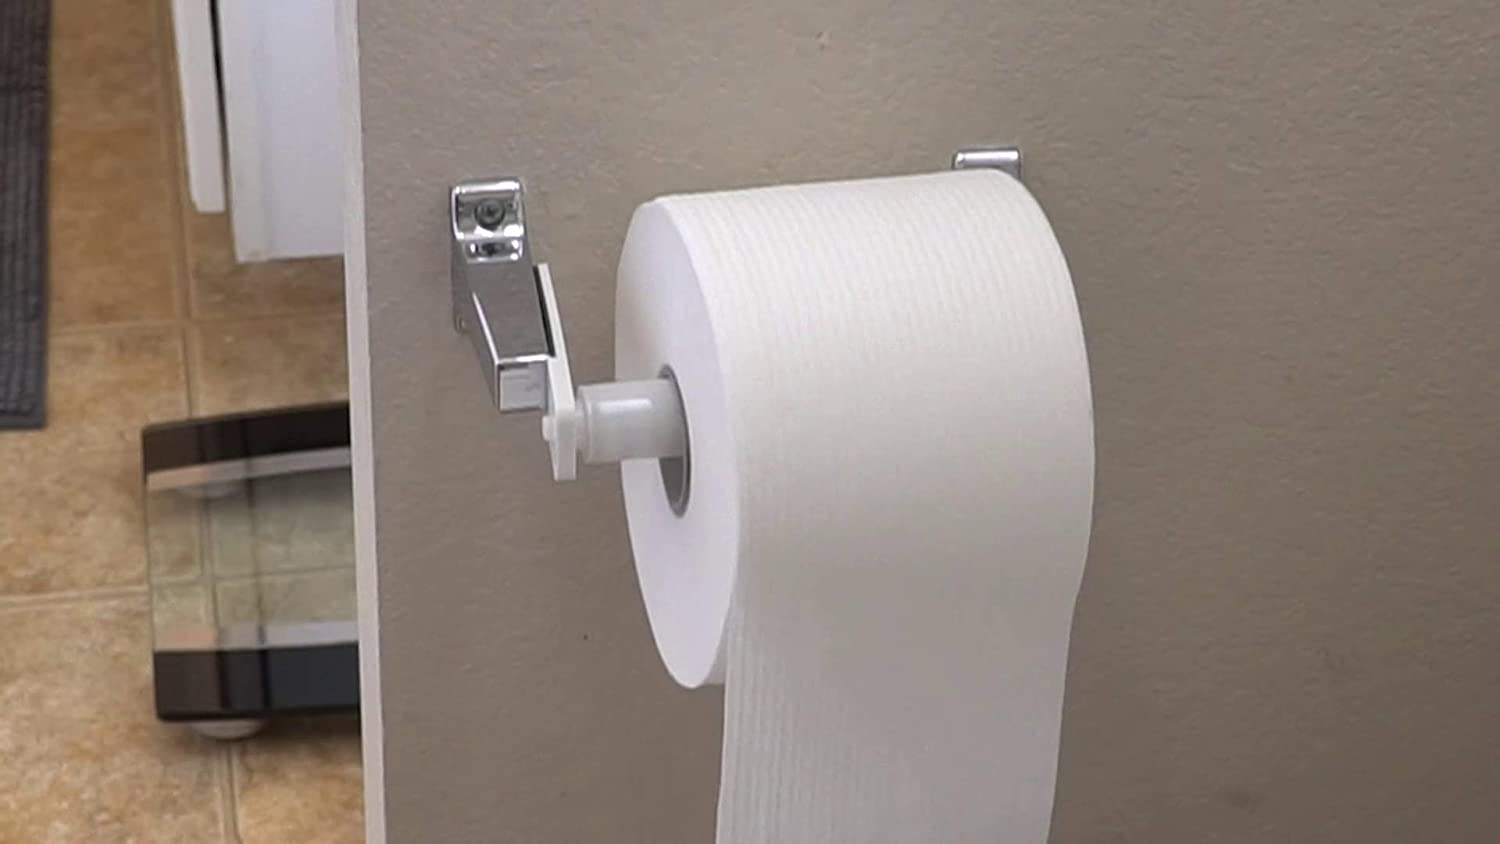 Teravan Fixed Extender - Toilet Paper Adhesive Extending Adapter for Large Rolls (White)